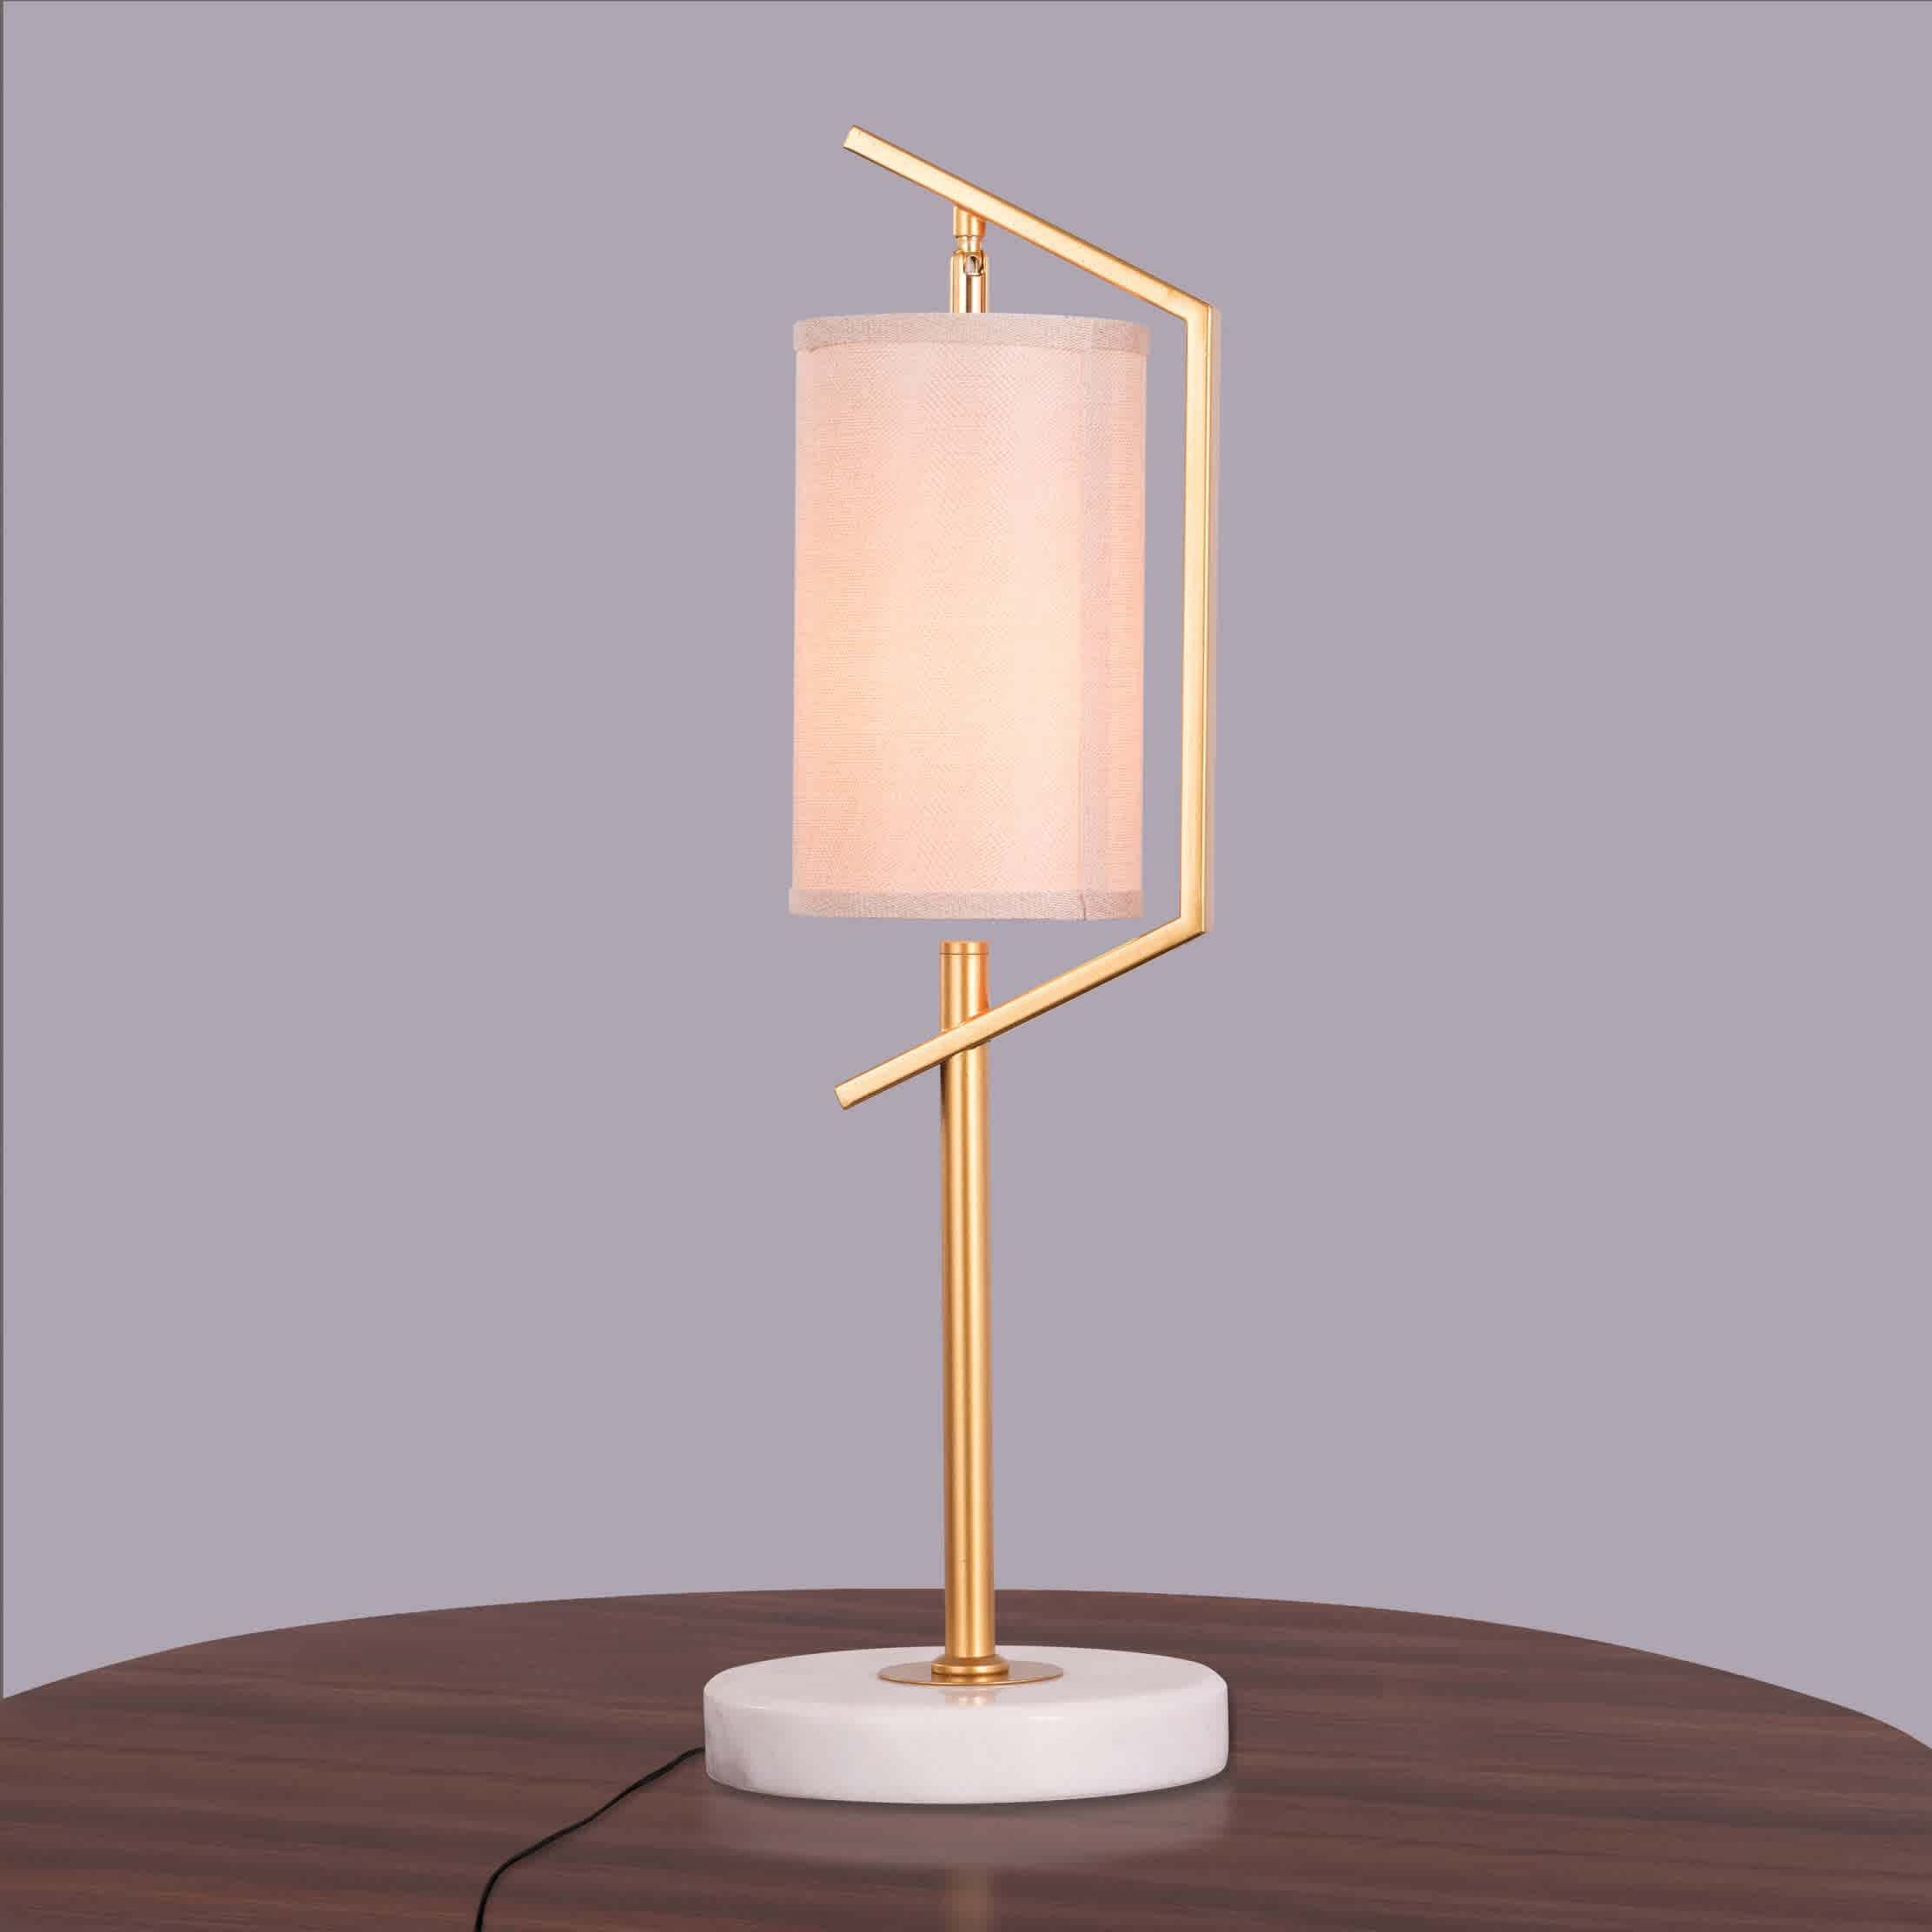 Lamps Online Effortless Table Lamp Chez Moi Table Lamp Light Decorations